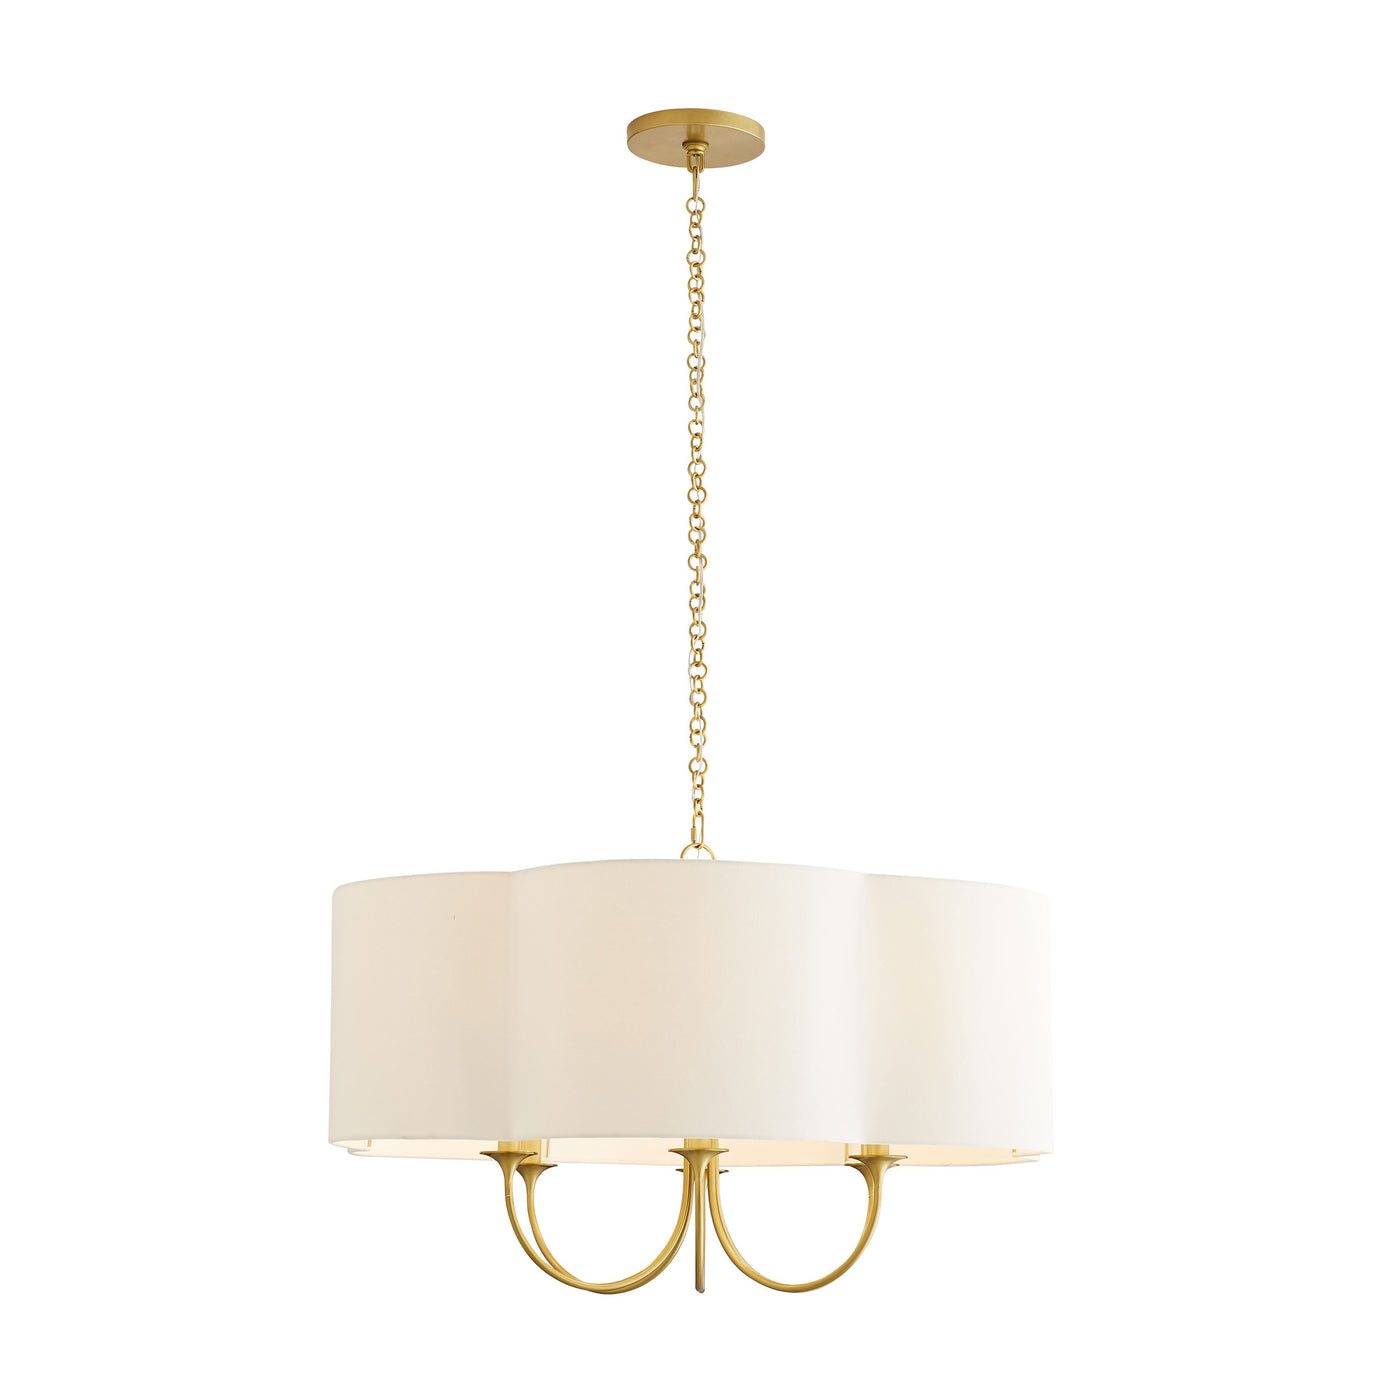 arteriors rittenhouse chandelier antique brass full view illuminated